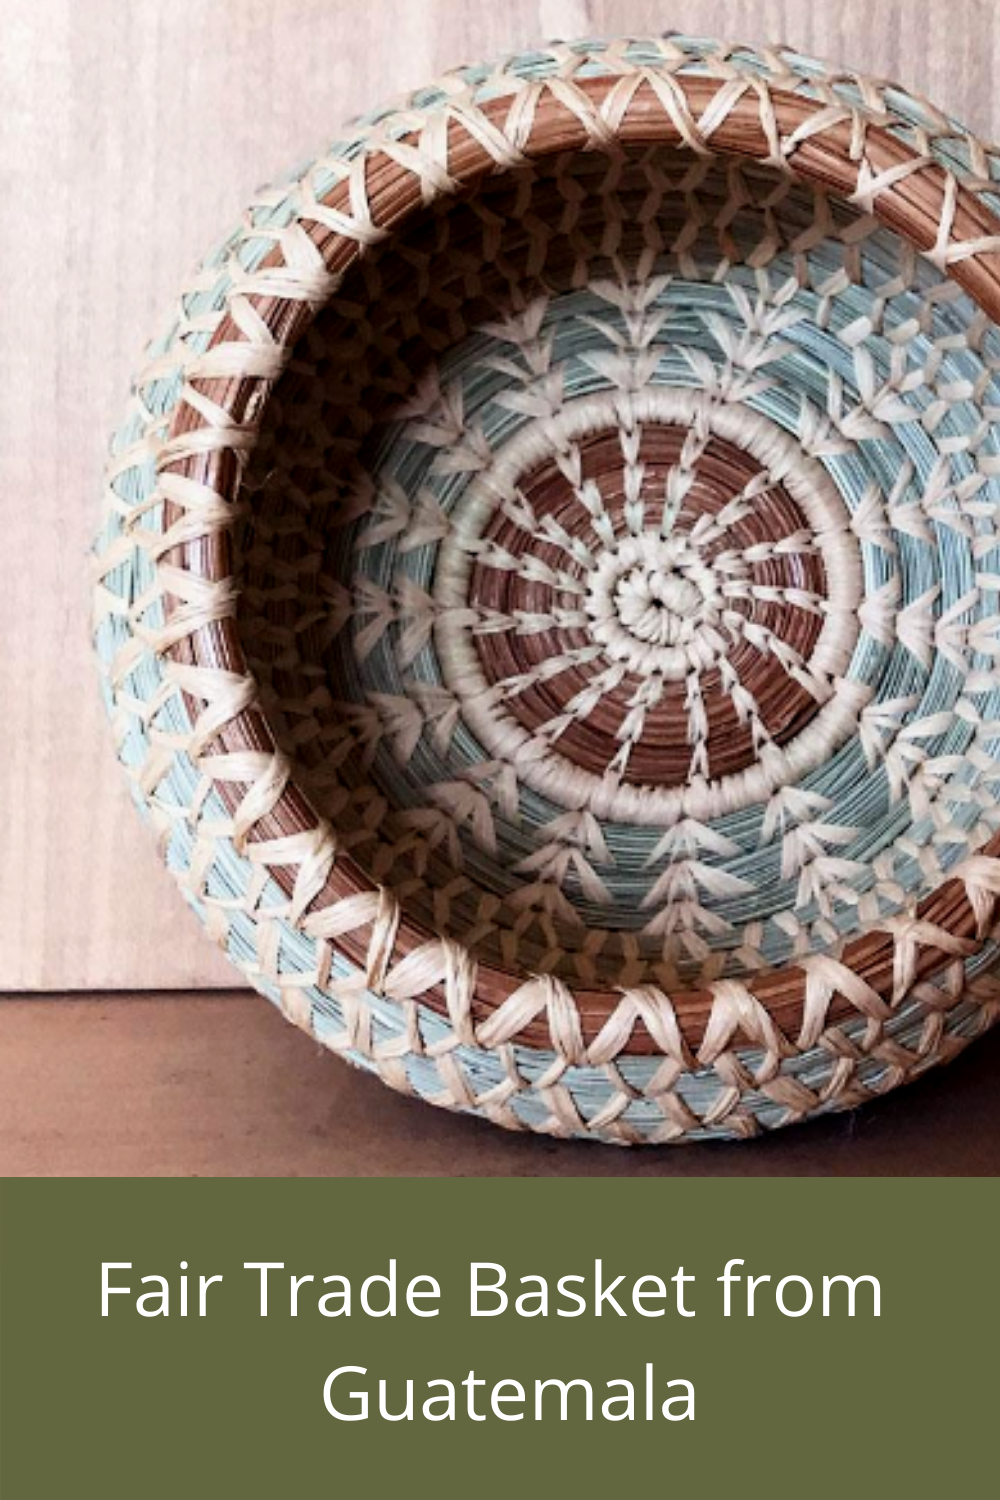 Fair Trade Baskets made by women from Guatemala